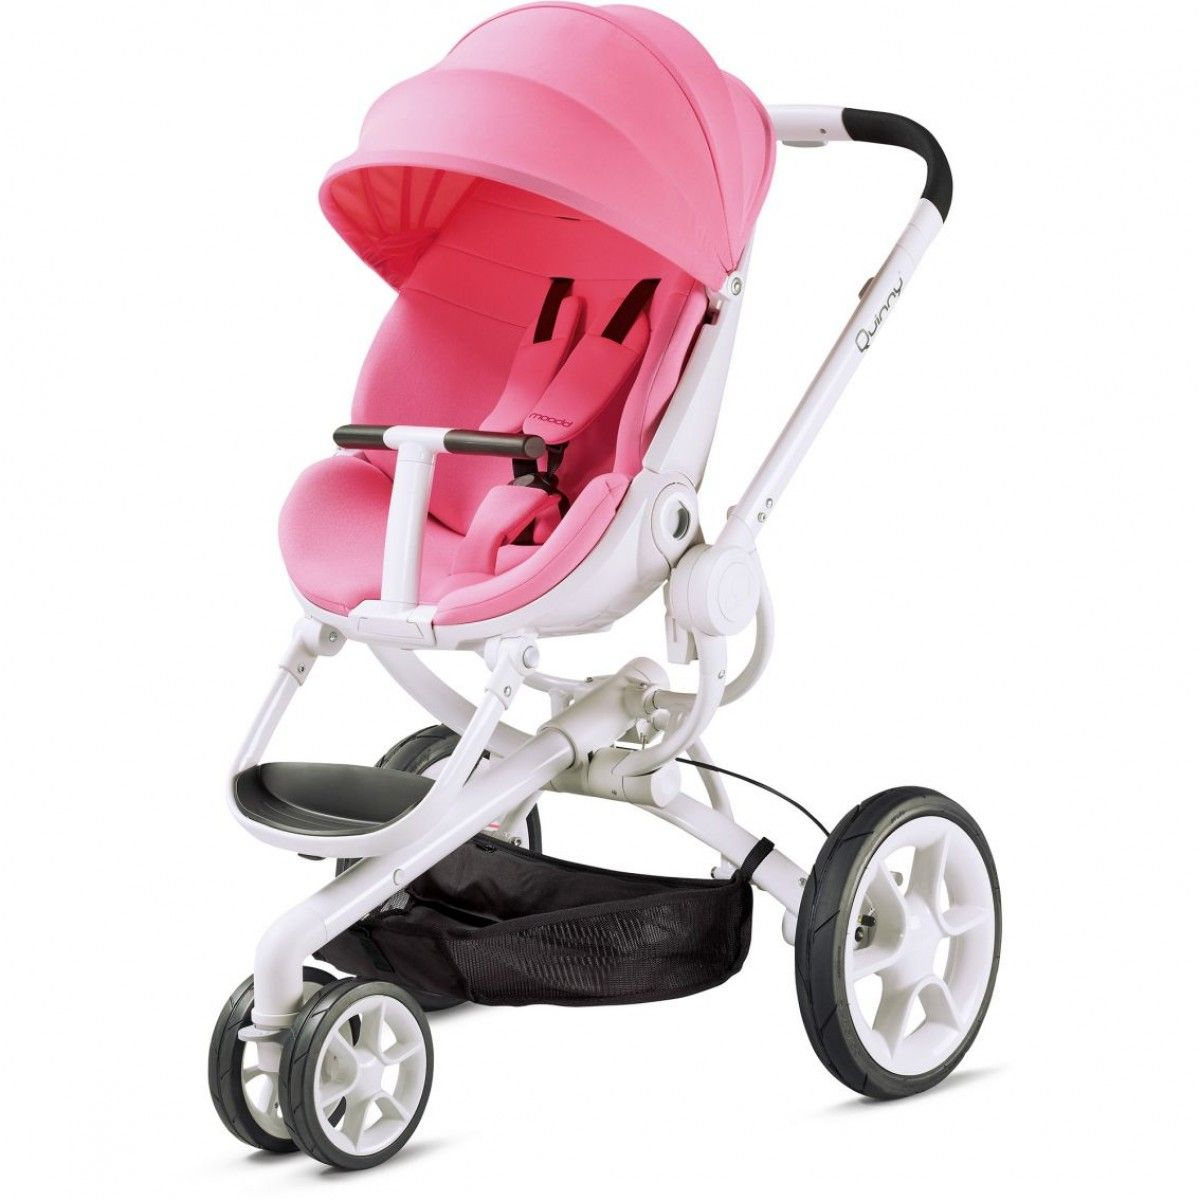 The Quinny Moodd Pram In Pink White Its Really Is A Stunner